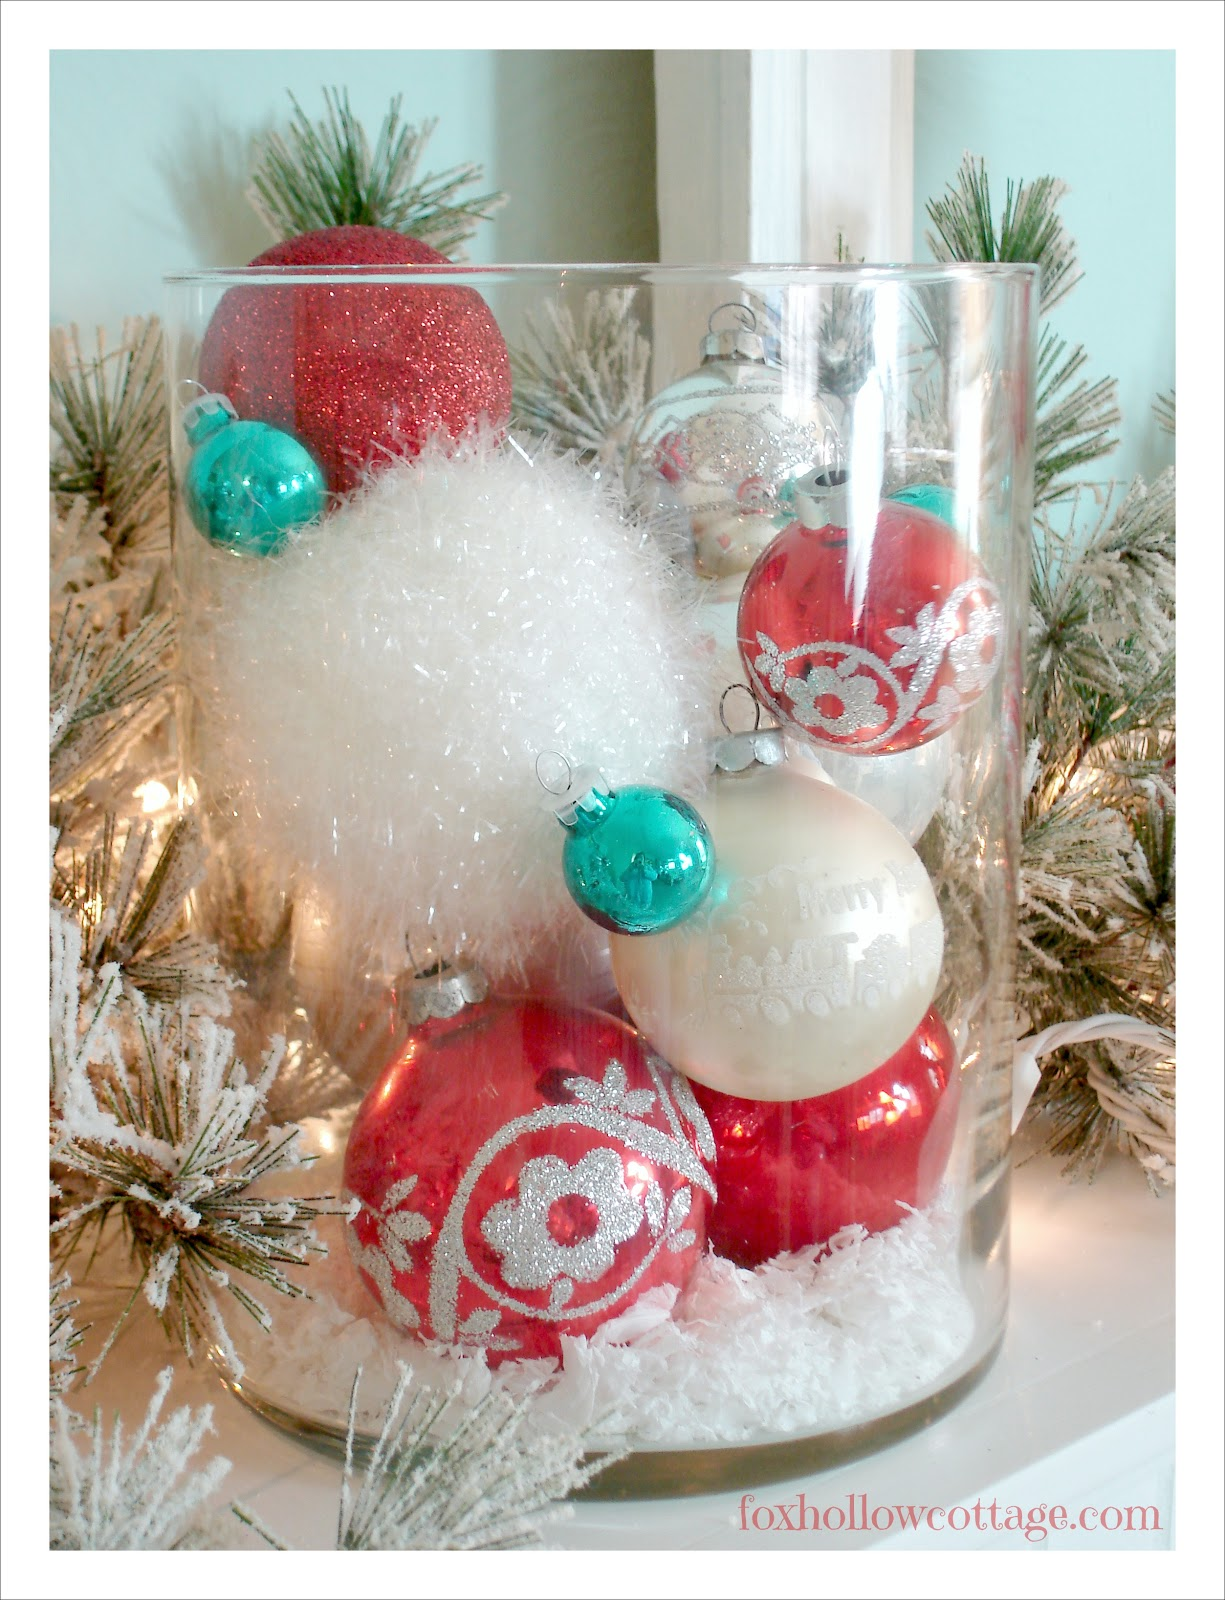 10 Quick Ideas For Decorating With Christmas Ornaments